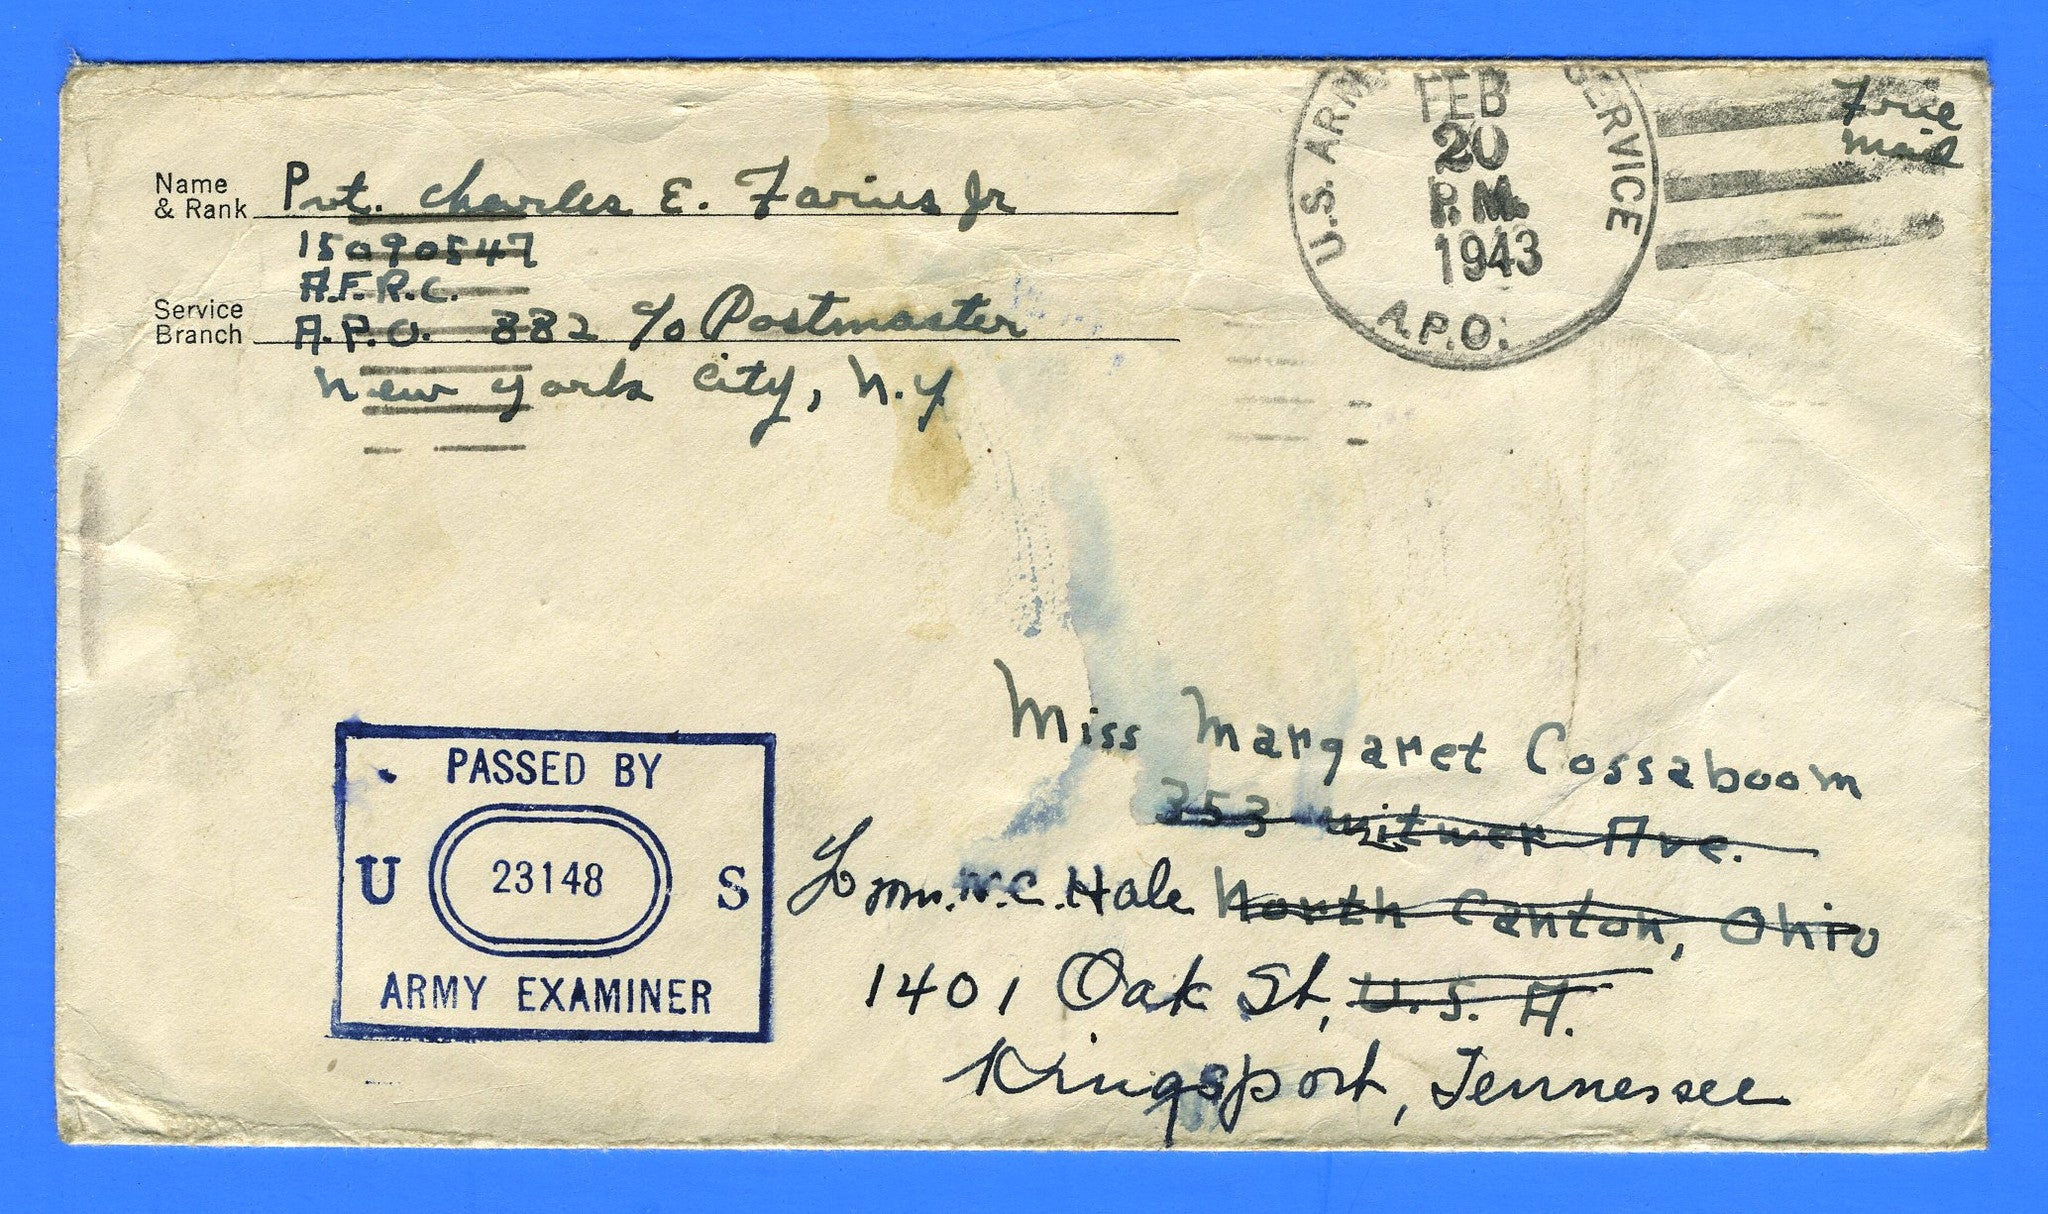 "Soldier's Censored ""Free"" Mail APO 882 Karachi, India February 20, 1943"